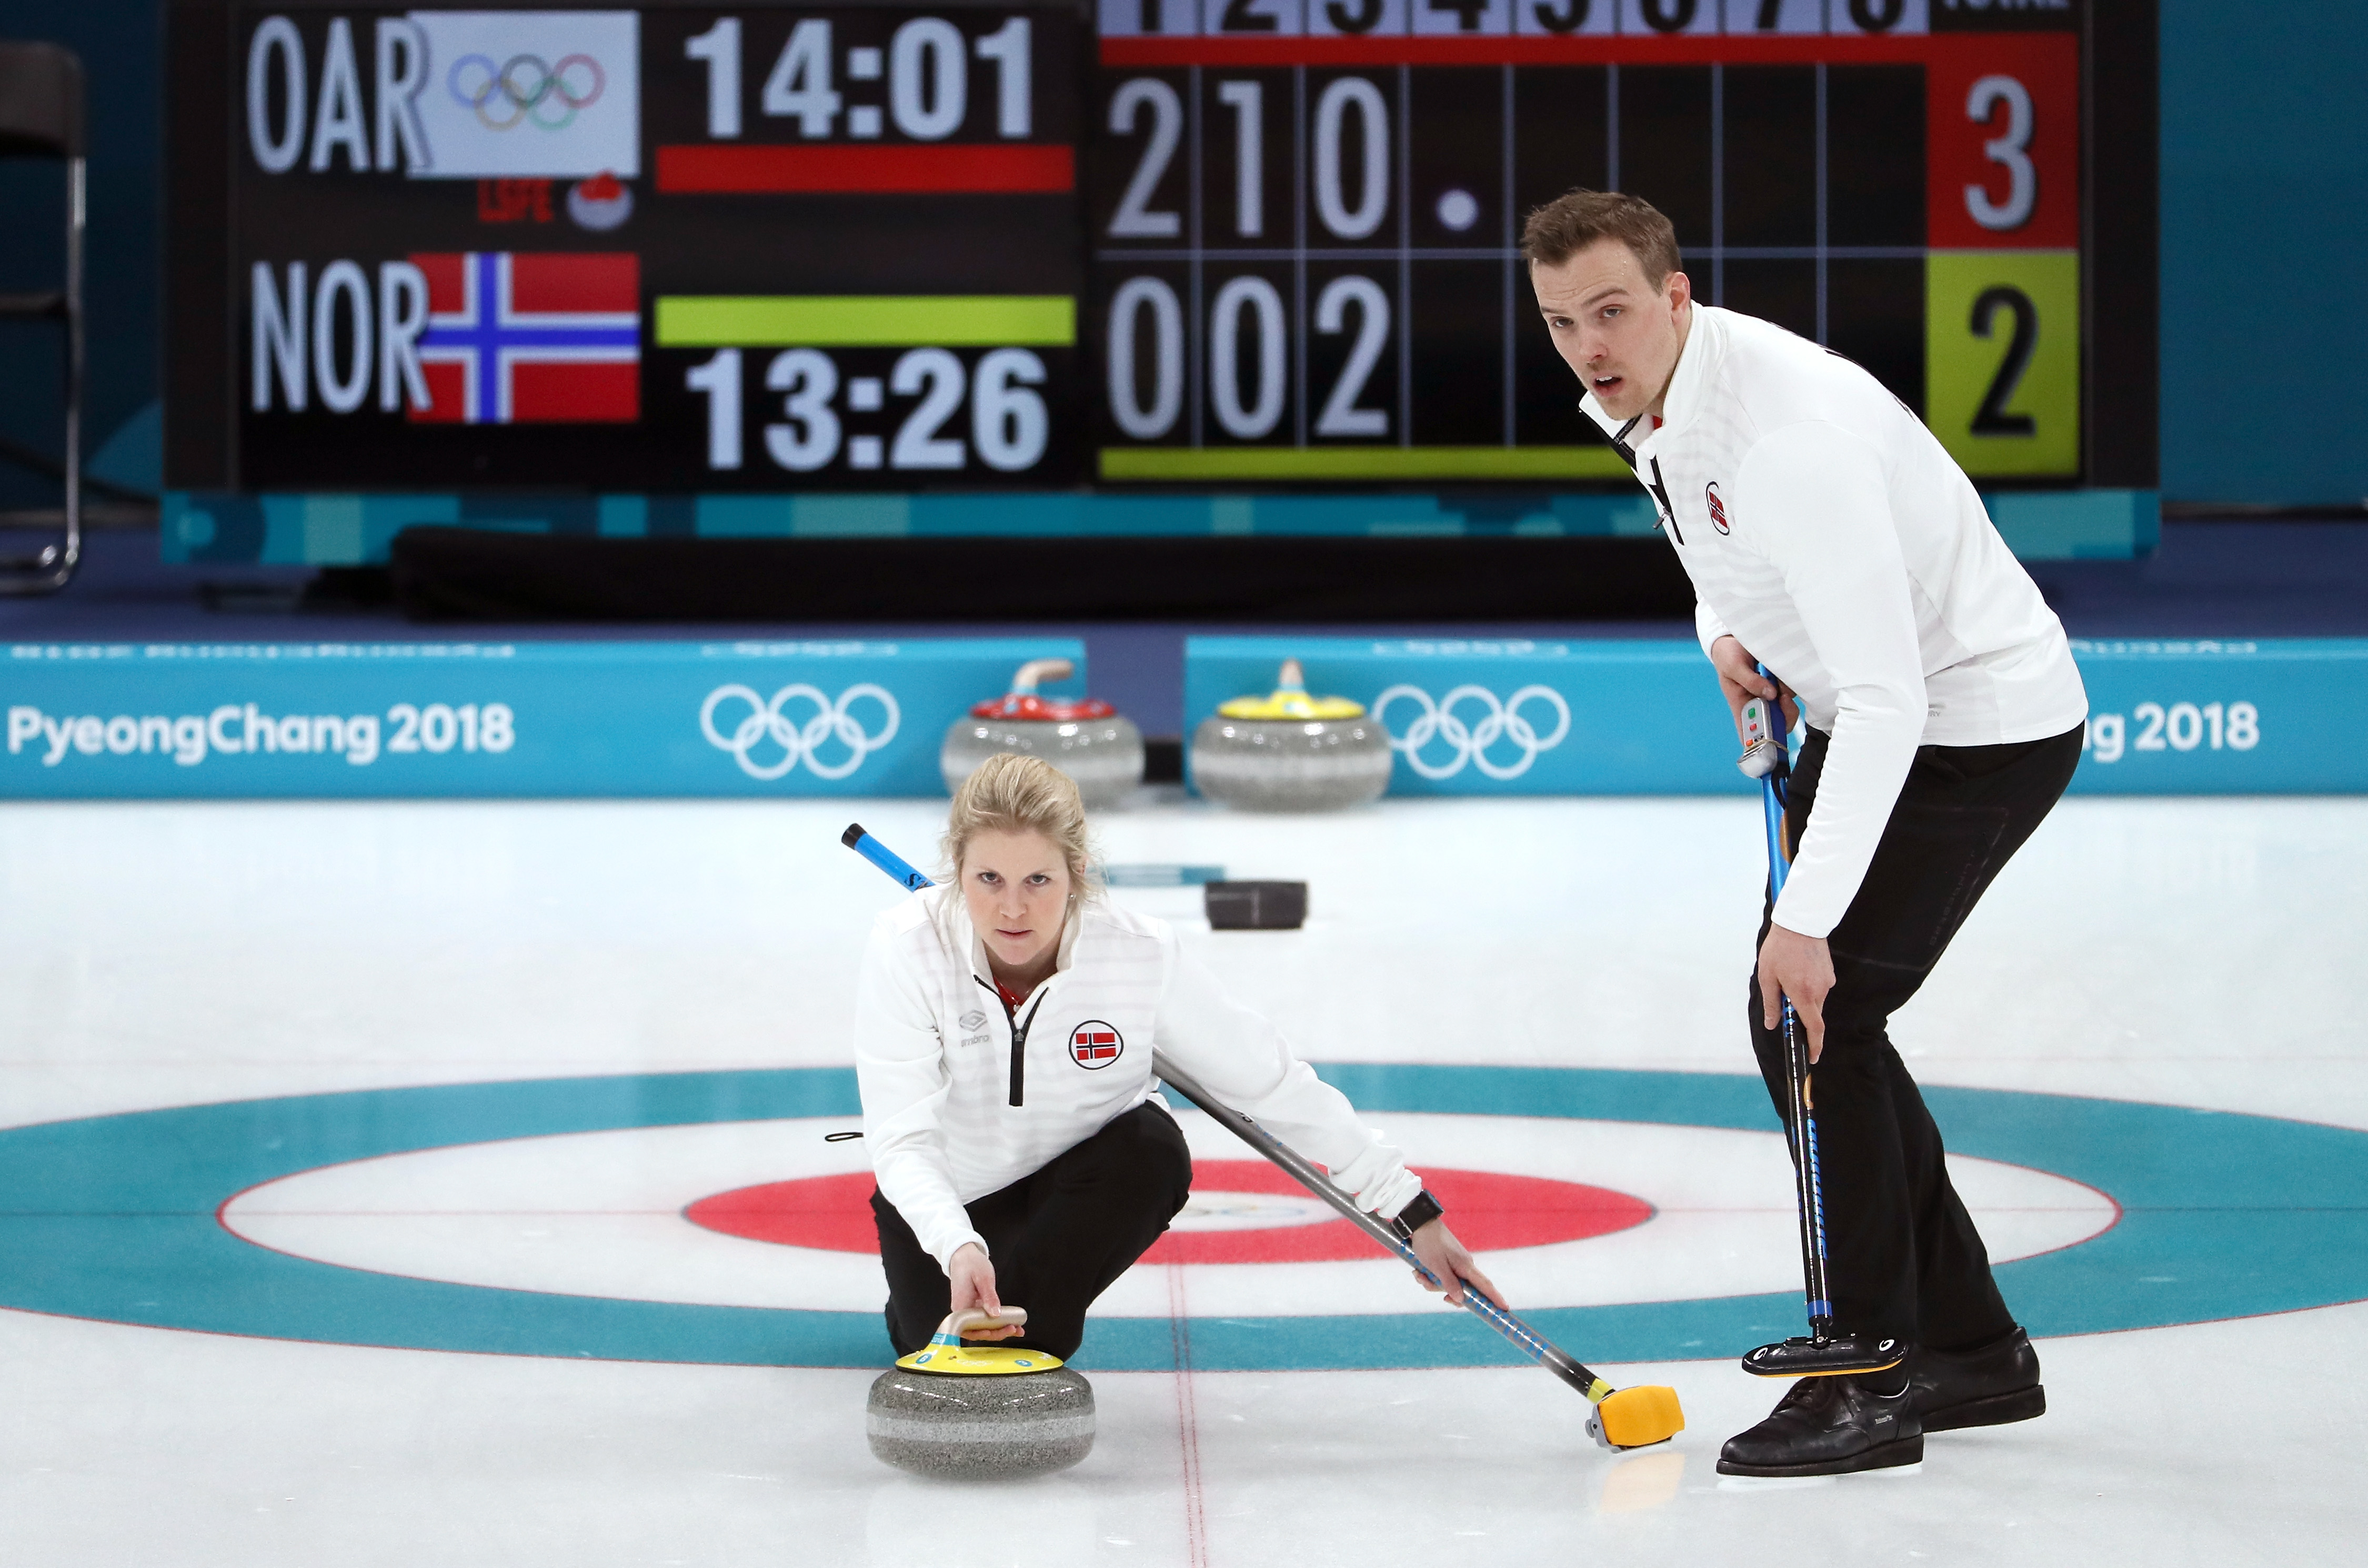 Kristin Skaslien and Magnus Nedregotten of Norway deliver a stone against Olympic Athletes from Russia during the Curling Mixed Doubles Bronze Medal Game on day four of the PyeongChang 2018 Winter Olympic Games at Gangneung Curling Centre on February 13, 2018 in Gangneung, South Korea.